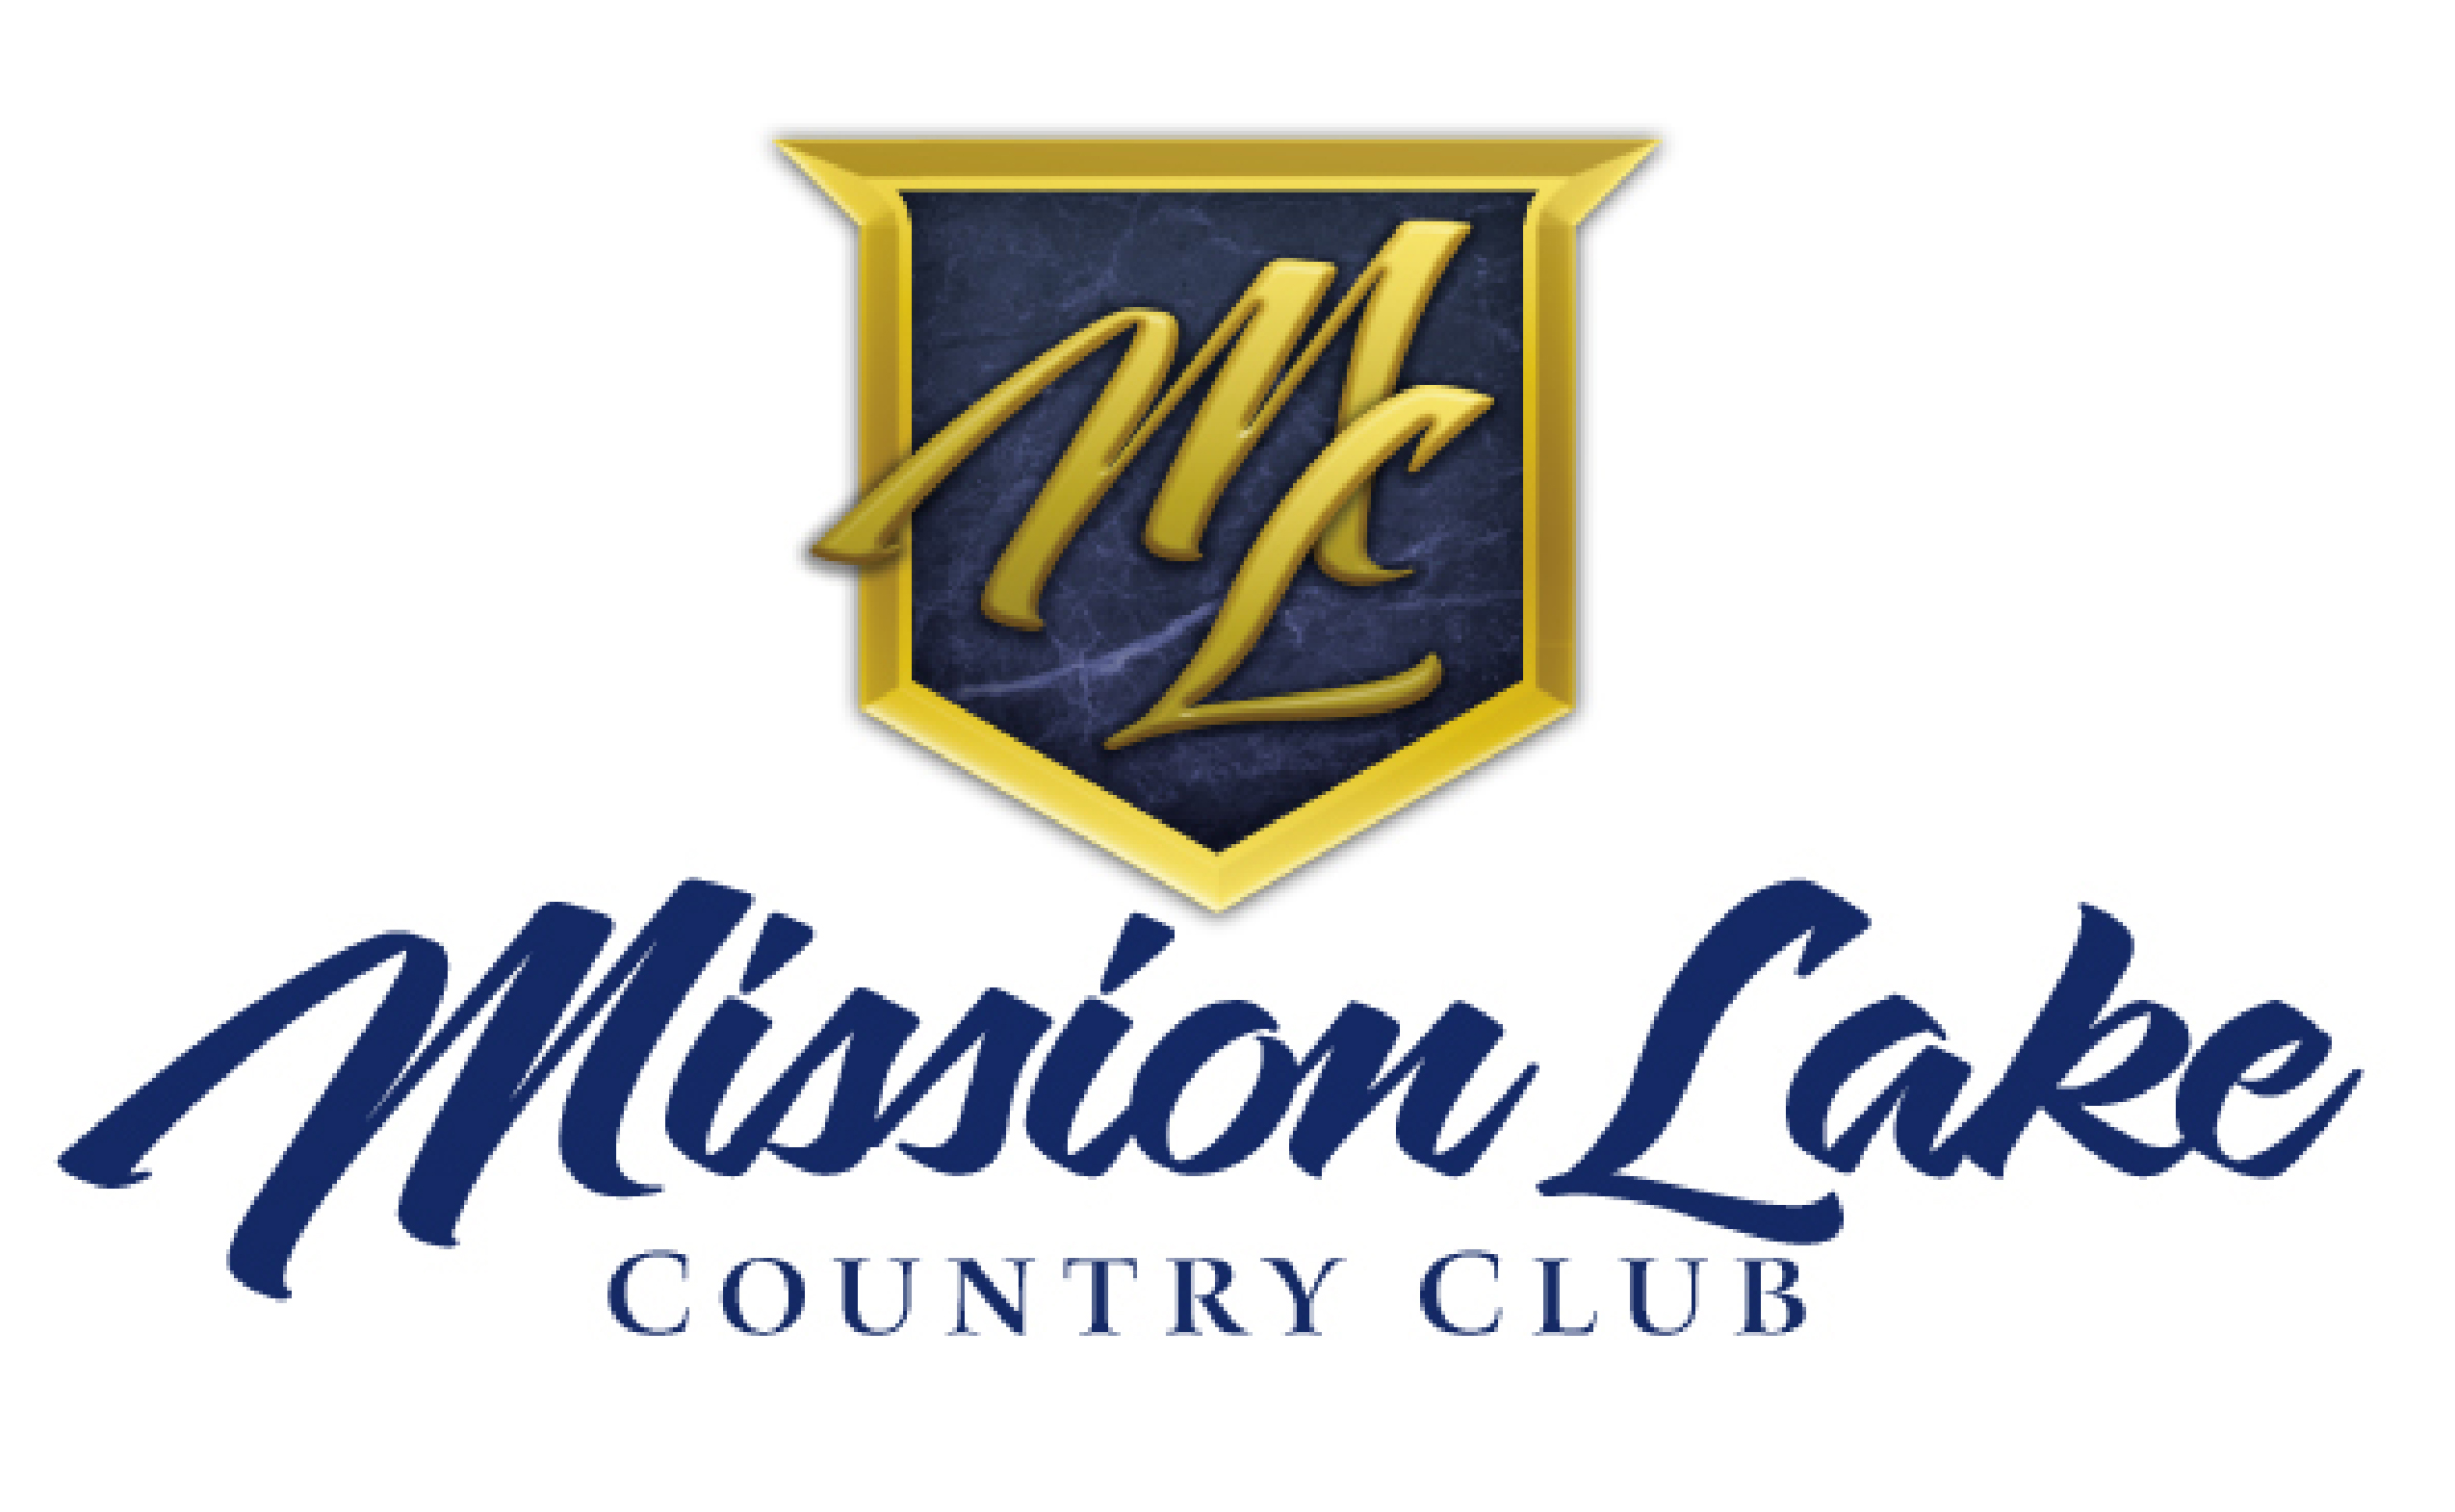 Mission Lake Country Club